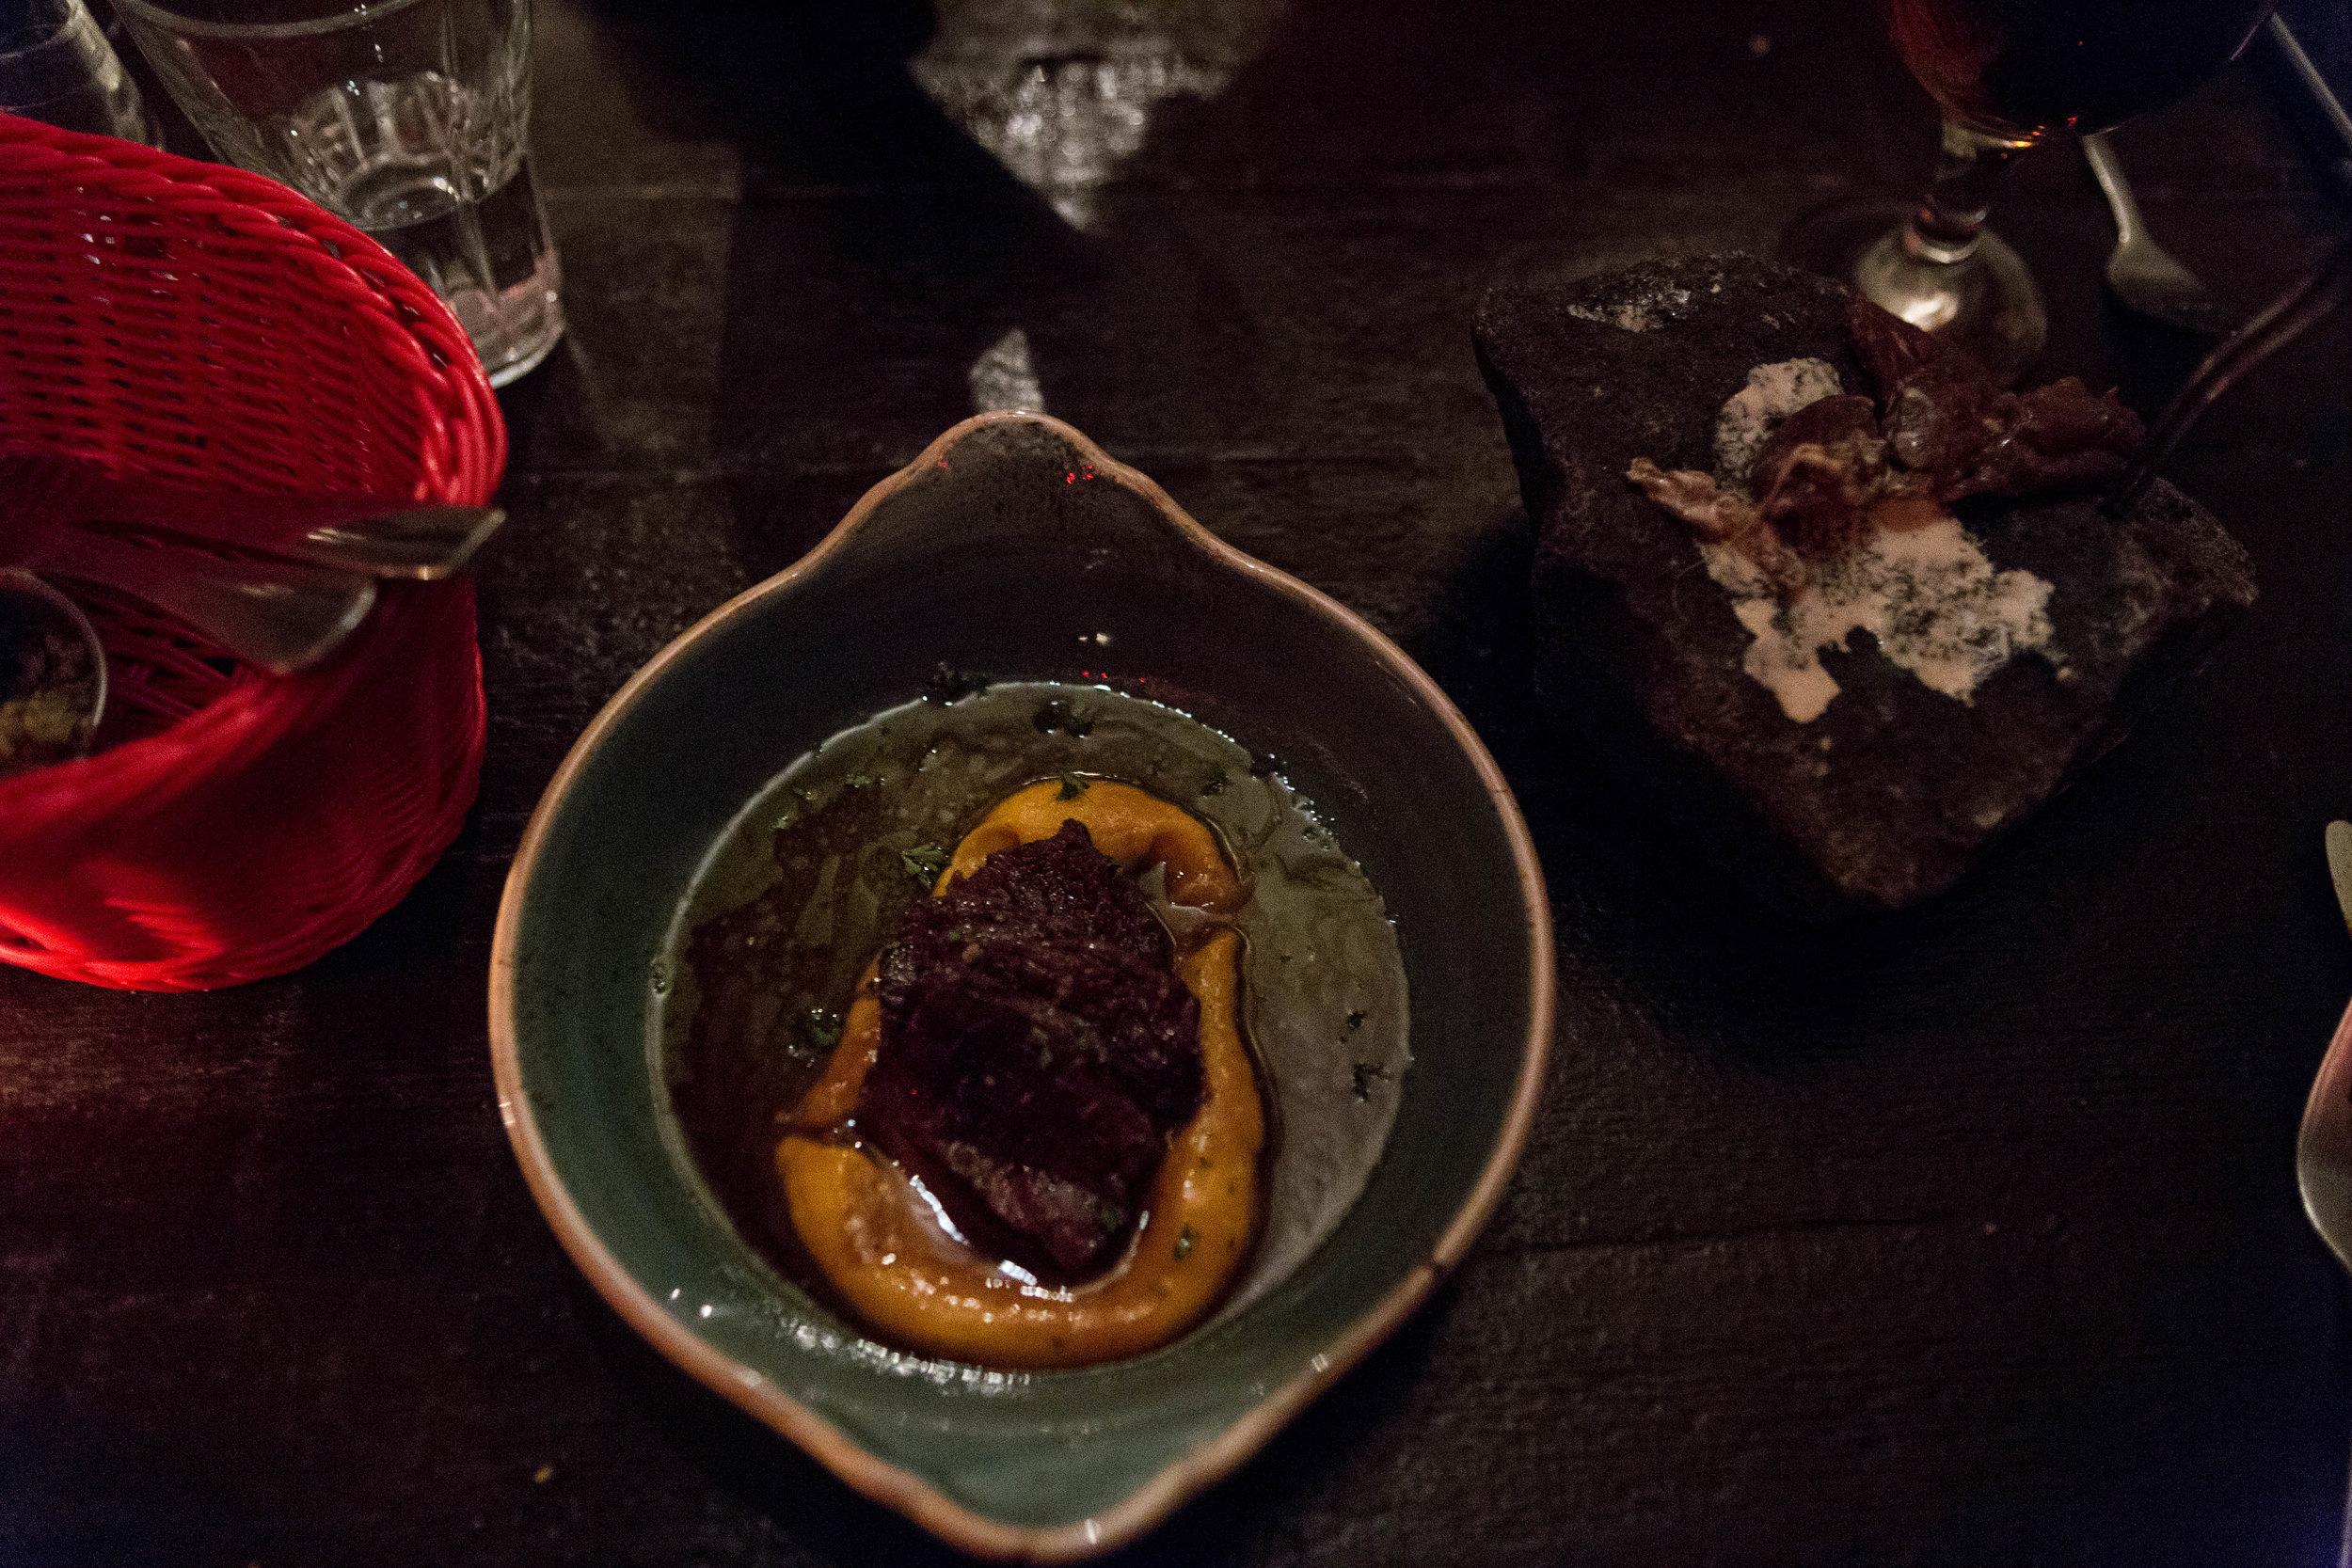 Minke Whale With Cranberry-Sauce